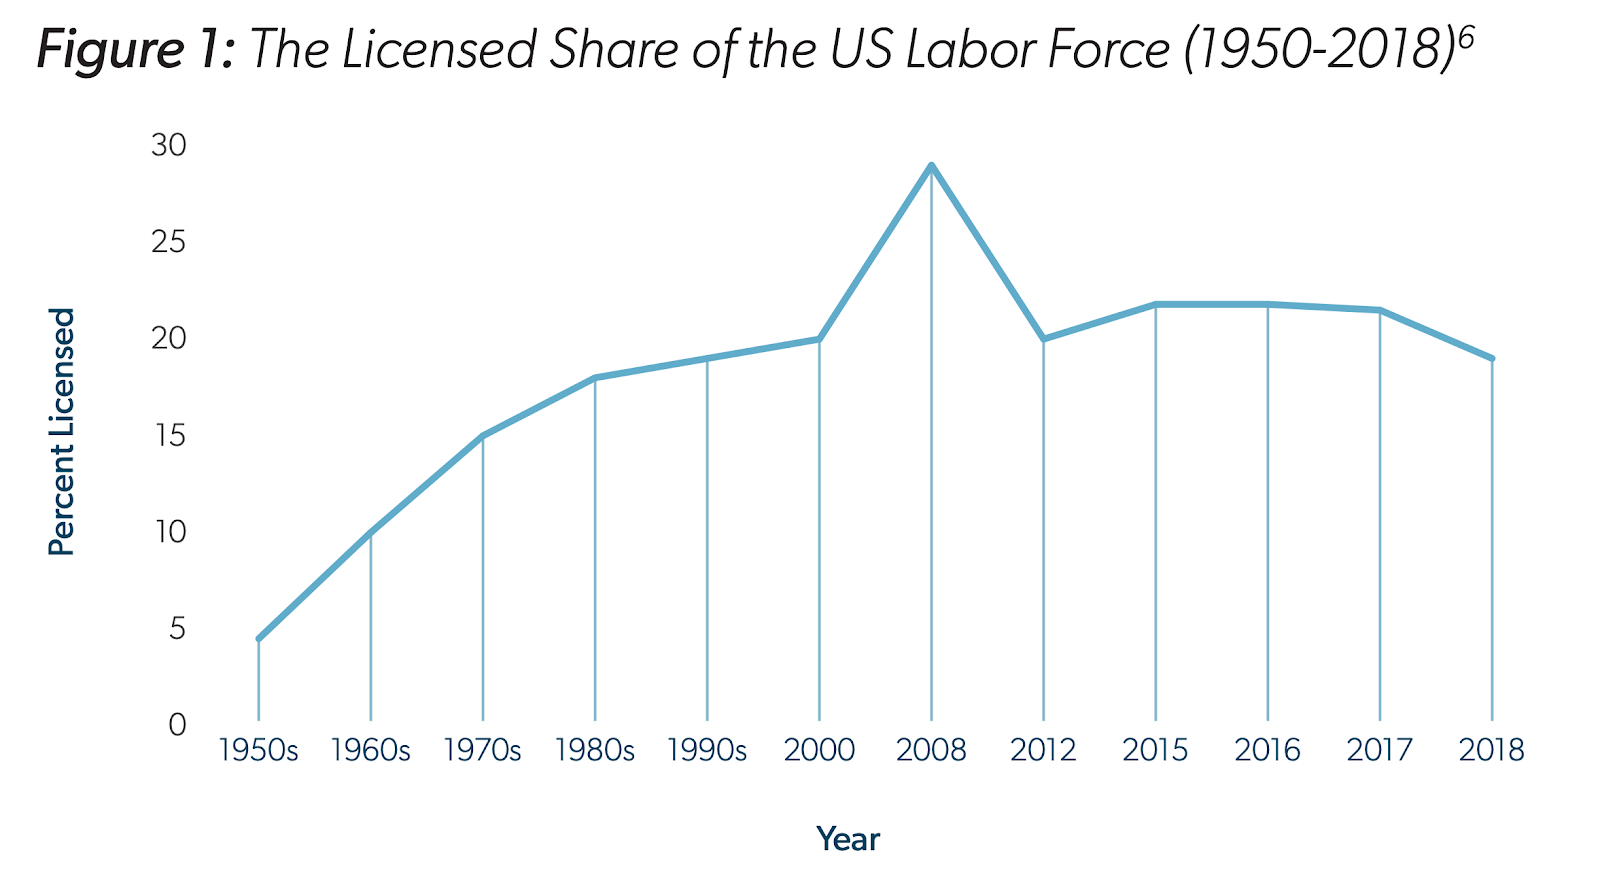 The percentage of the US labor force that requires a license to work has grown from about 5% to about 20% since 1950.